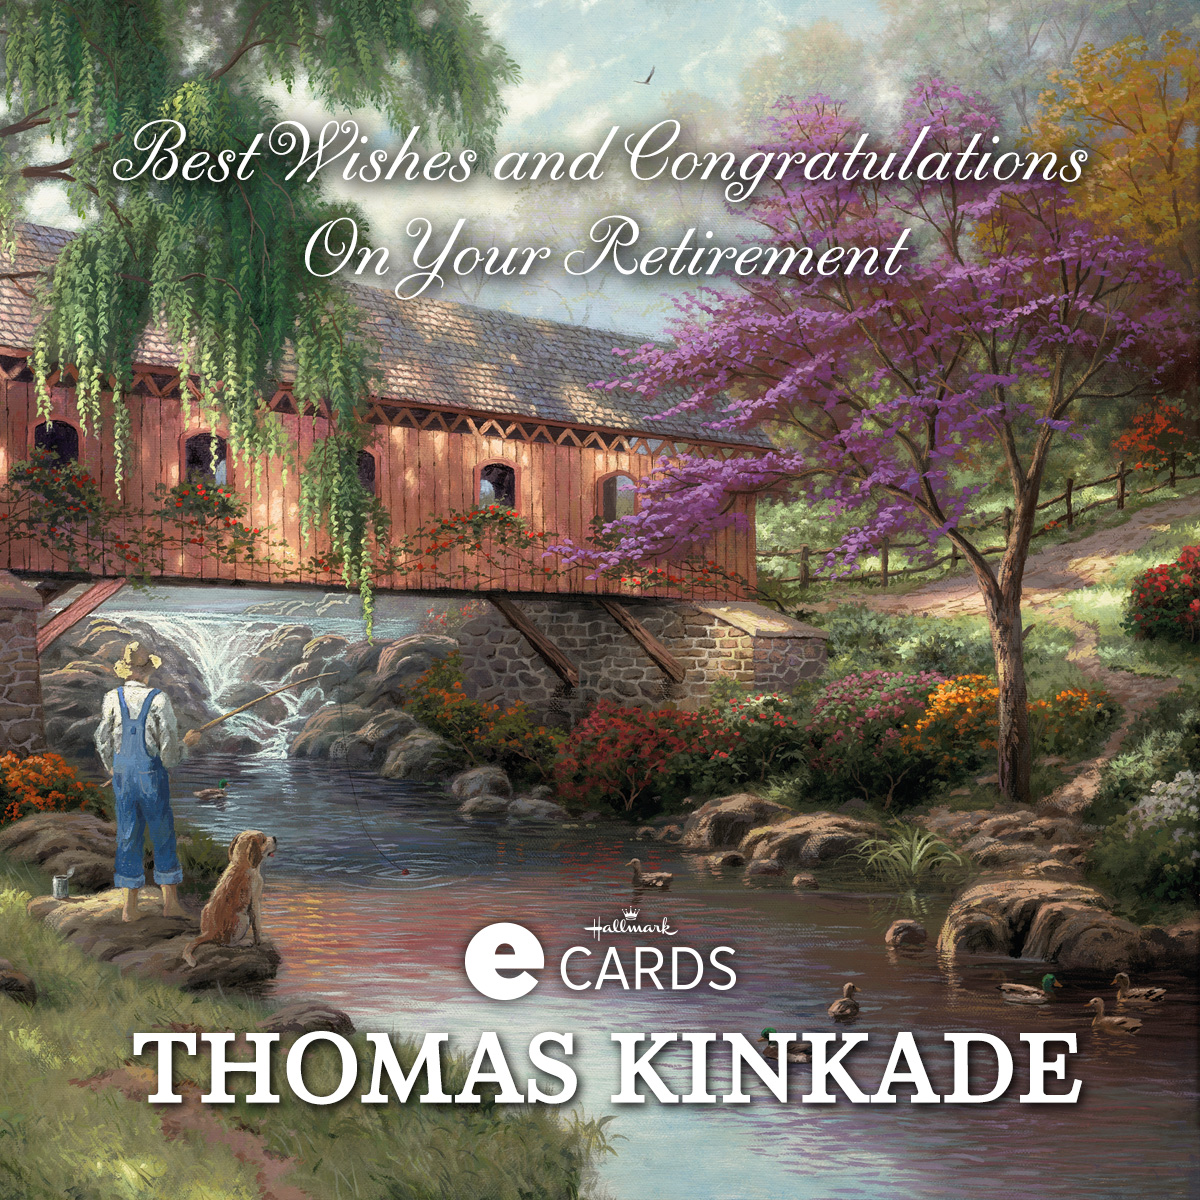 Thomas Kinkade Retirement Ecards The Thomas Kinkade Company